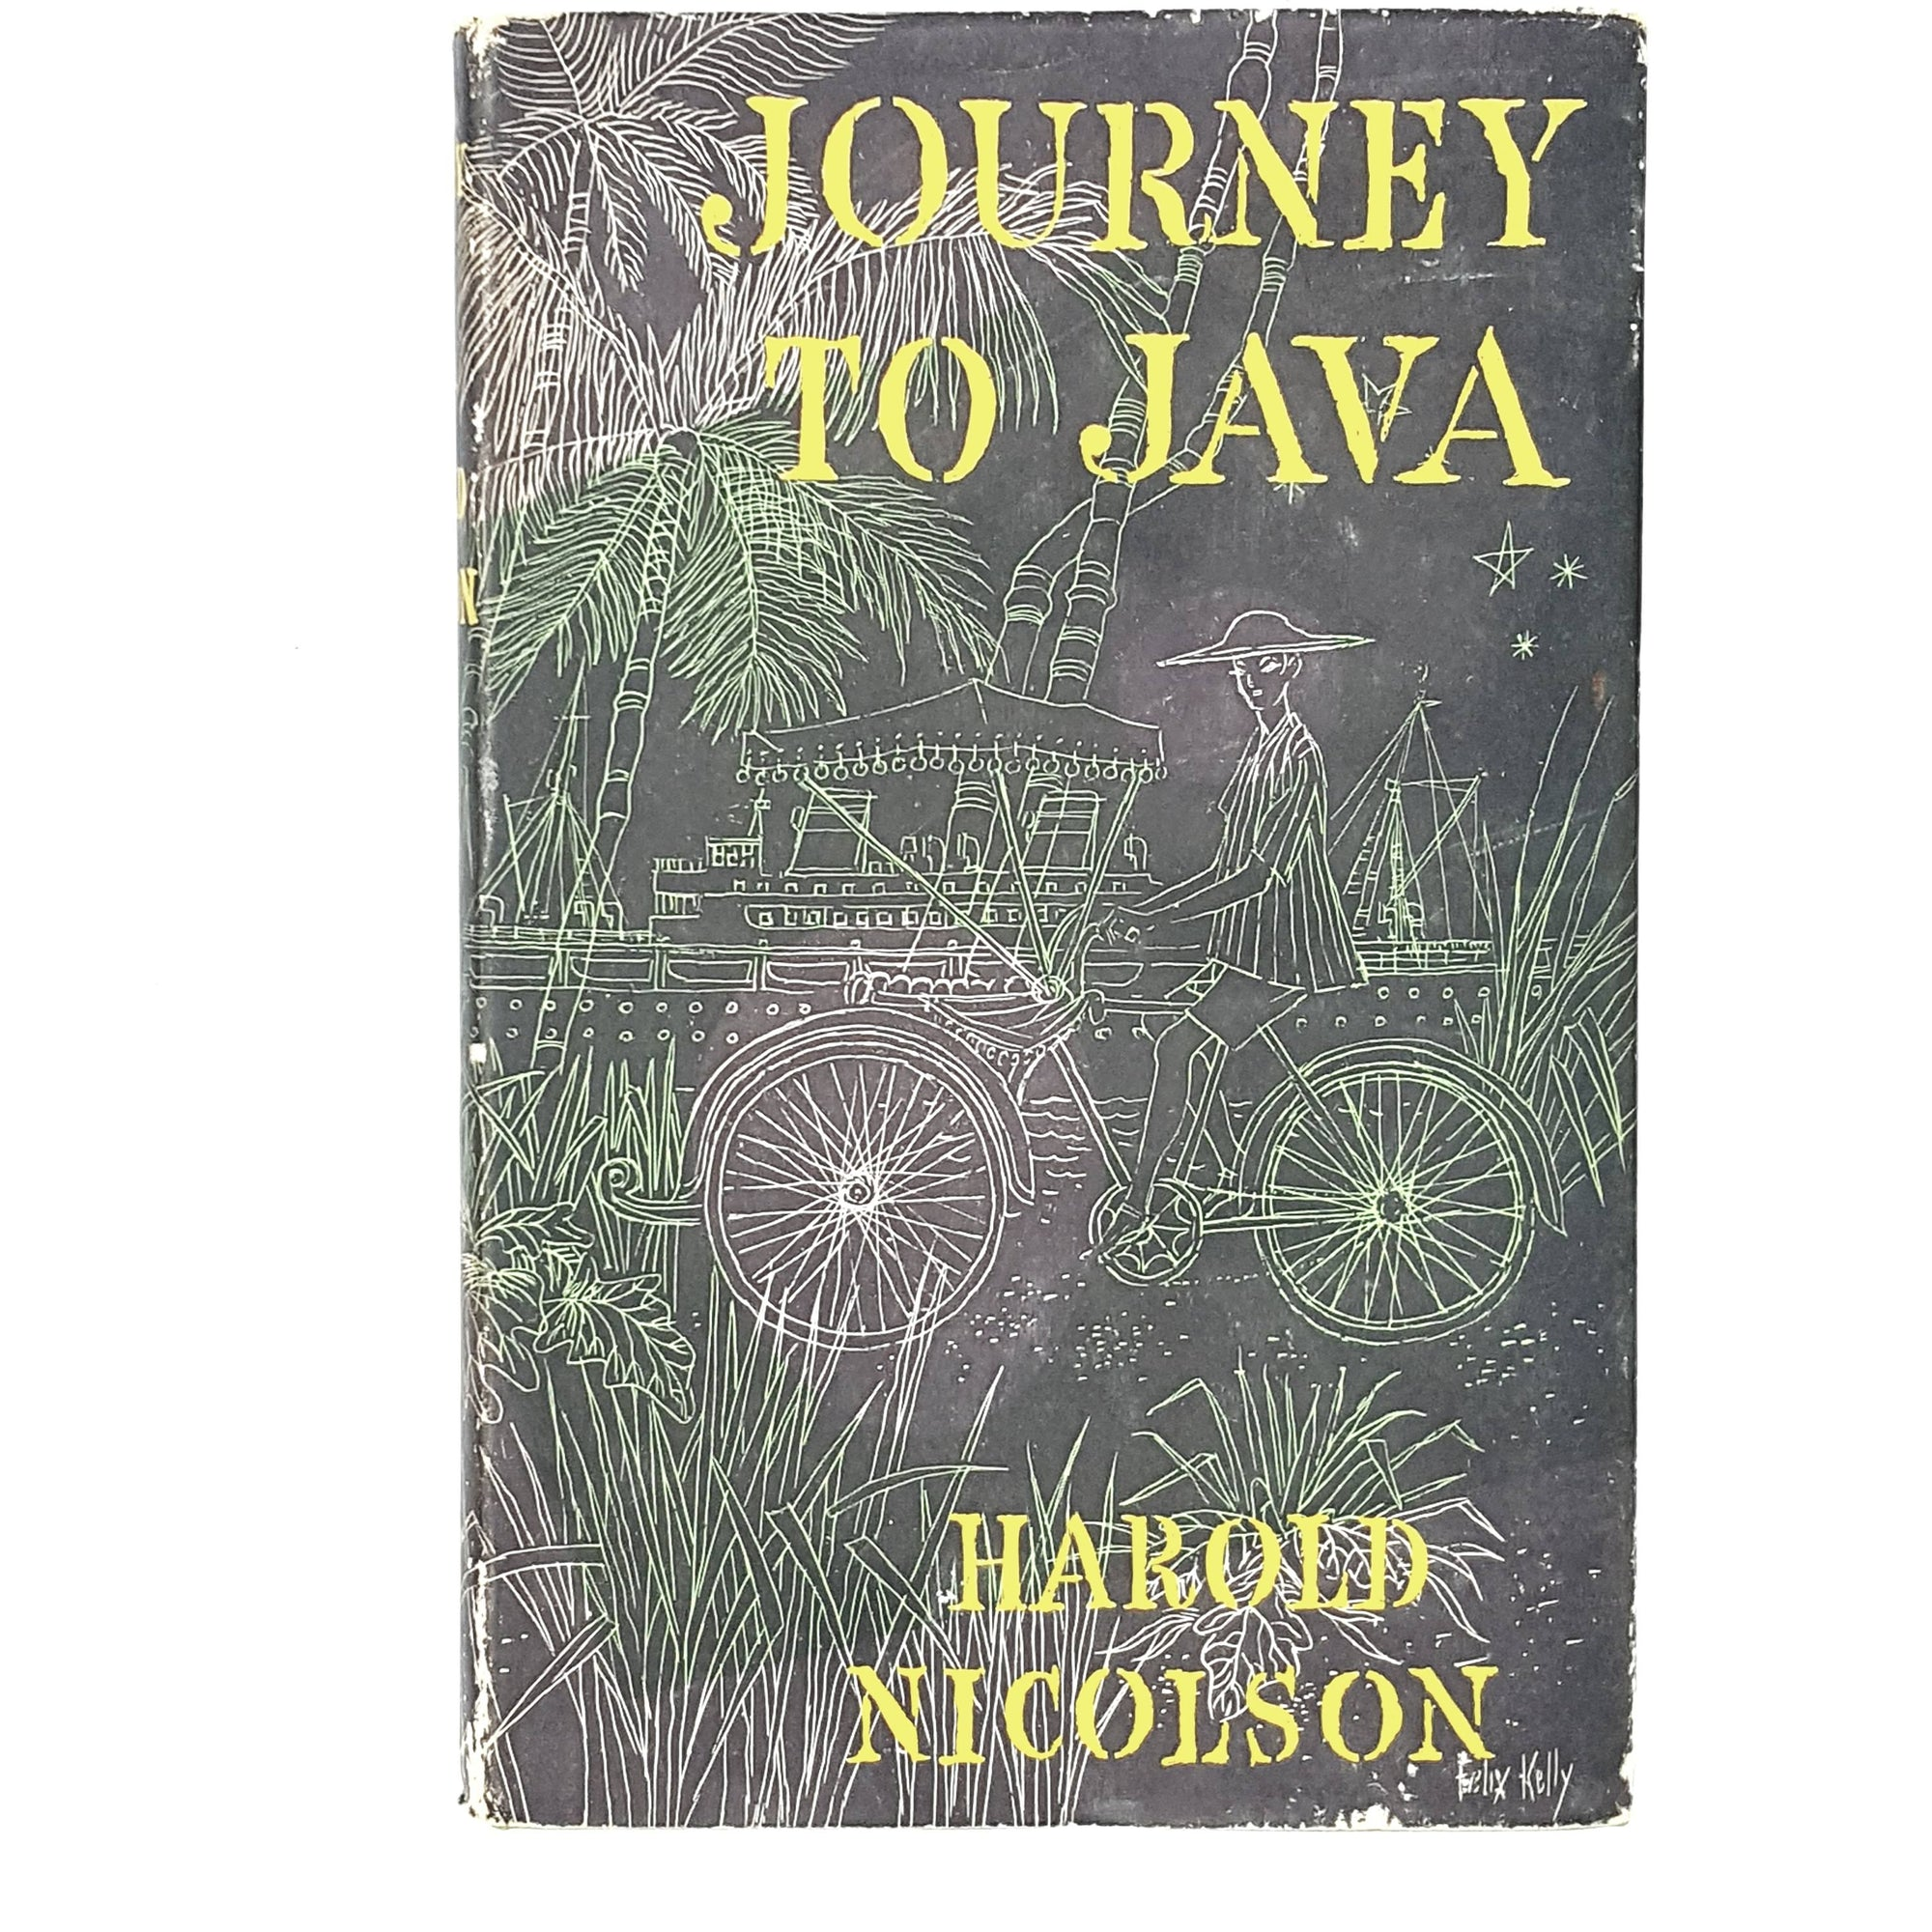 vintage-travel-journey-java-black-country-house-library